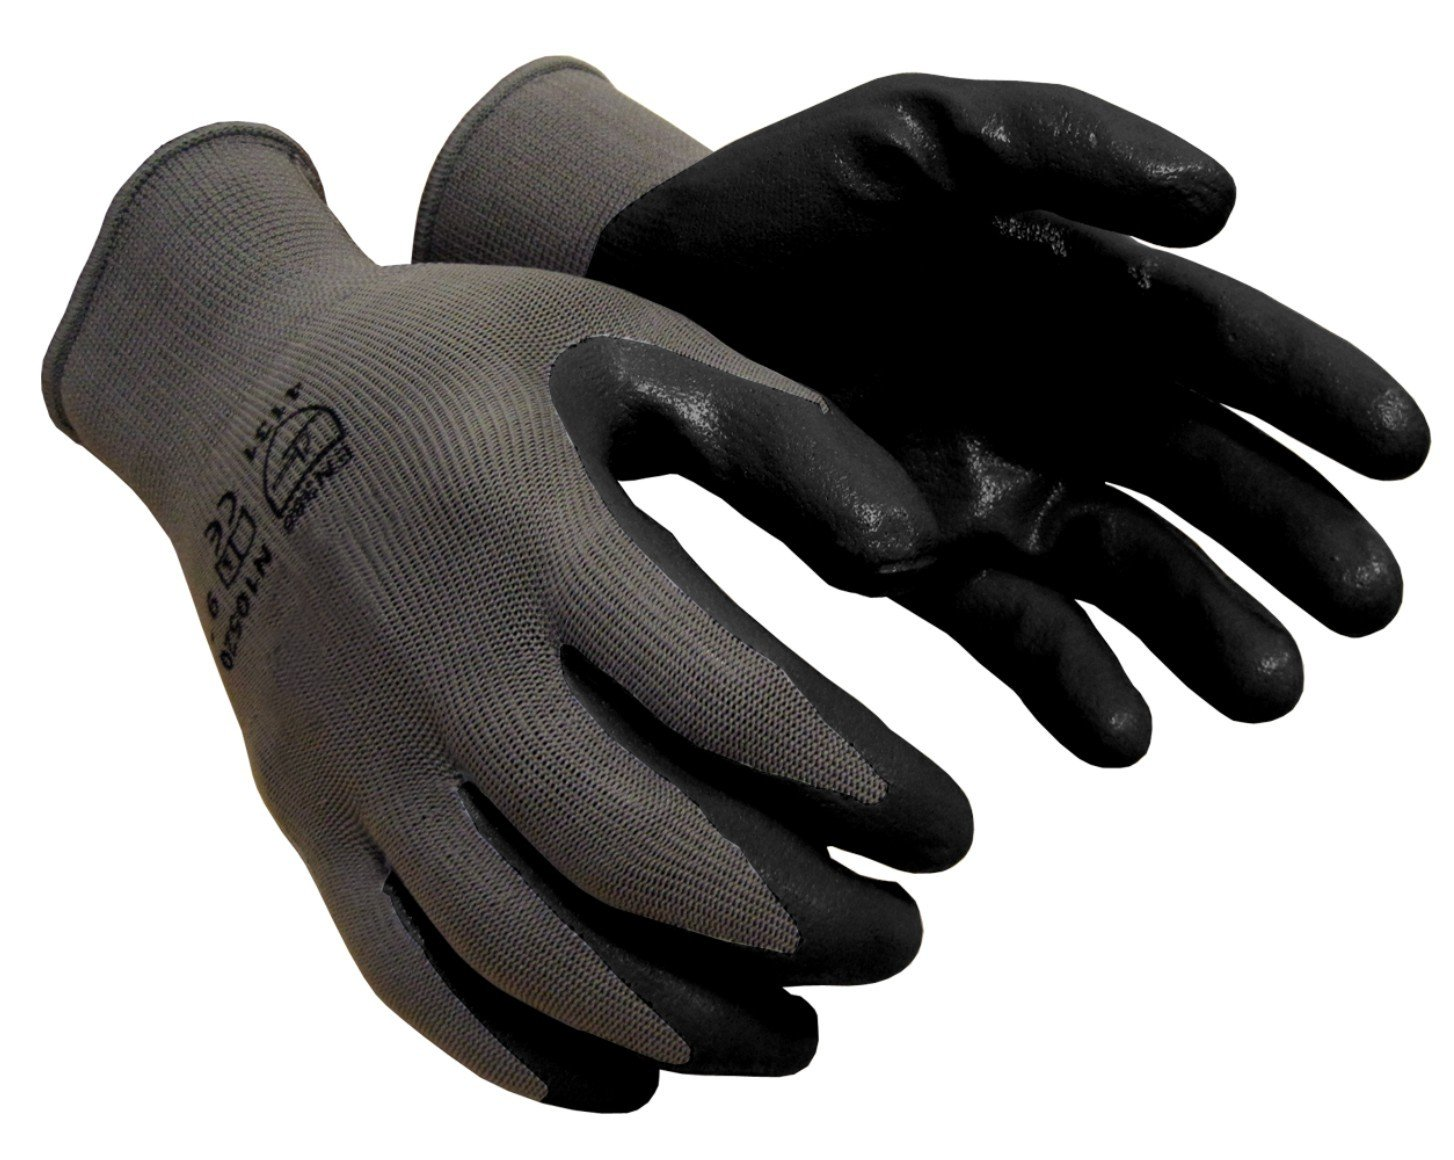 Azusa Safety N10520 13 Gauge Knit Gray Nylon Safety Gloves, Black Nitrile Foam Textured Coated, Medium (Pack of 12 Pairs) by Azusa Safety (Image #1)